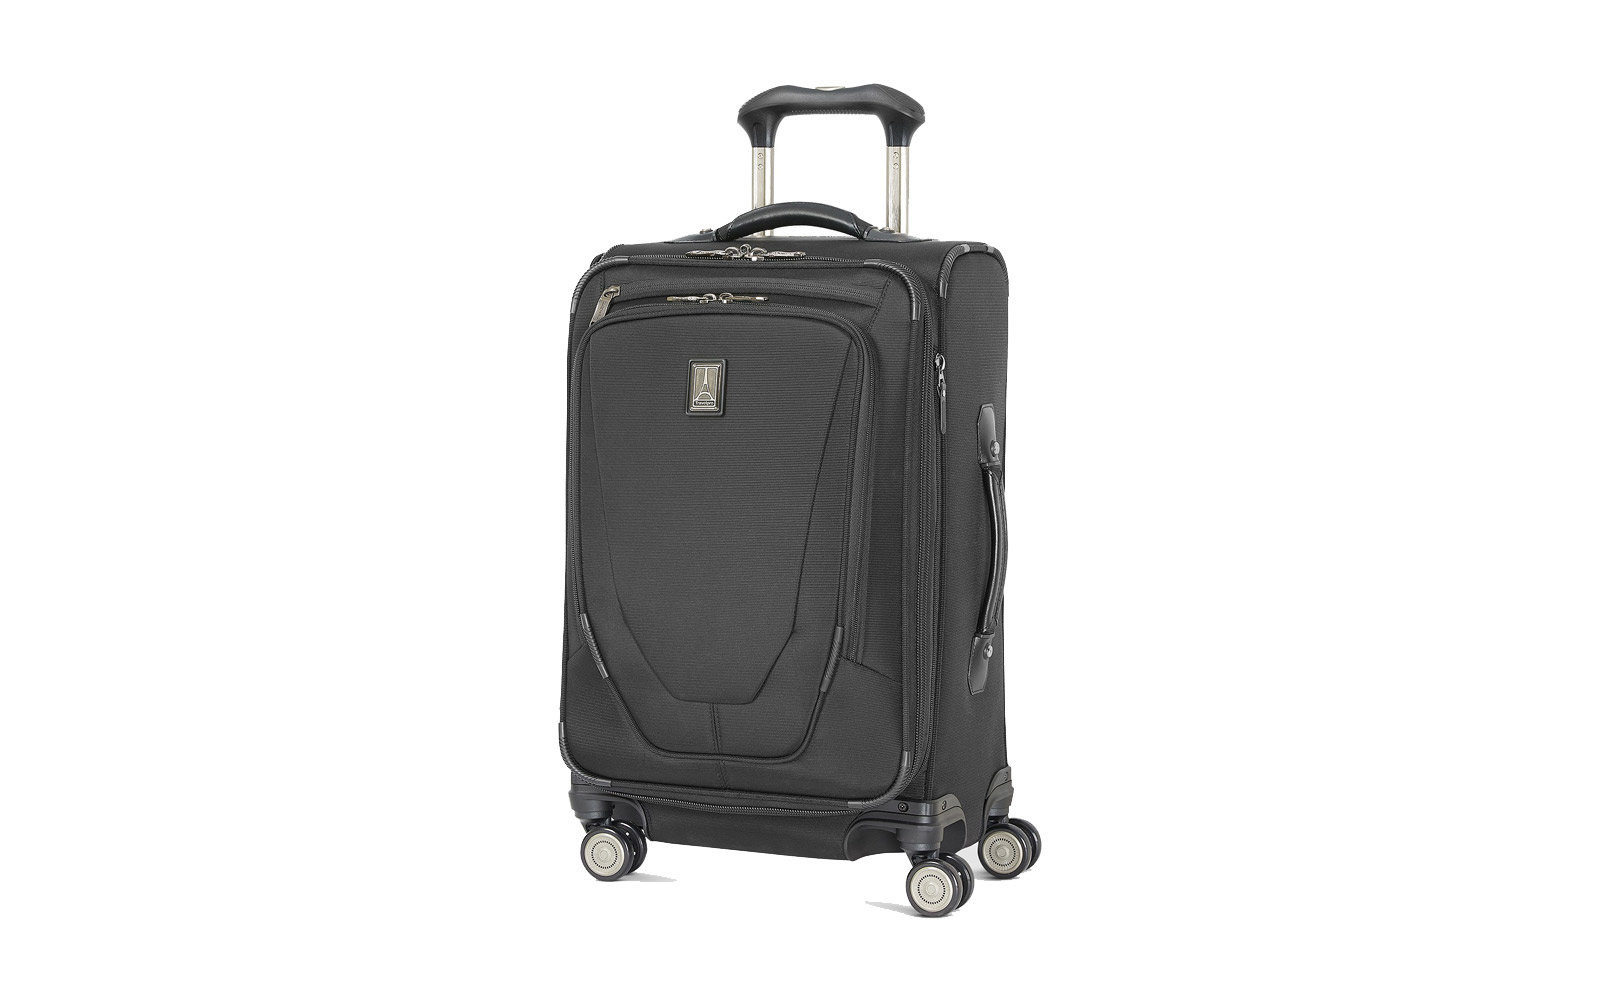 travelpro black friday luggage deals 2018